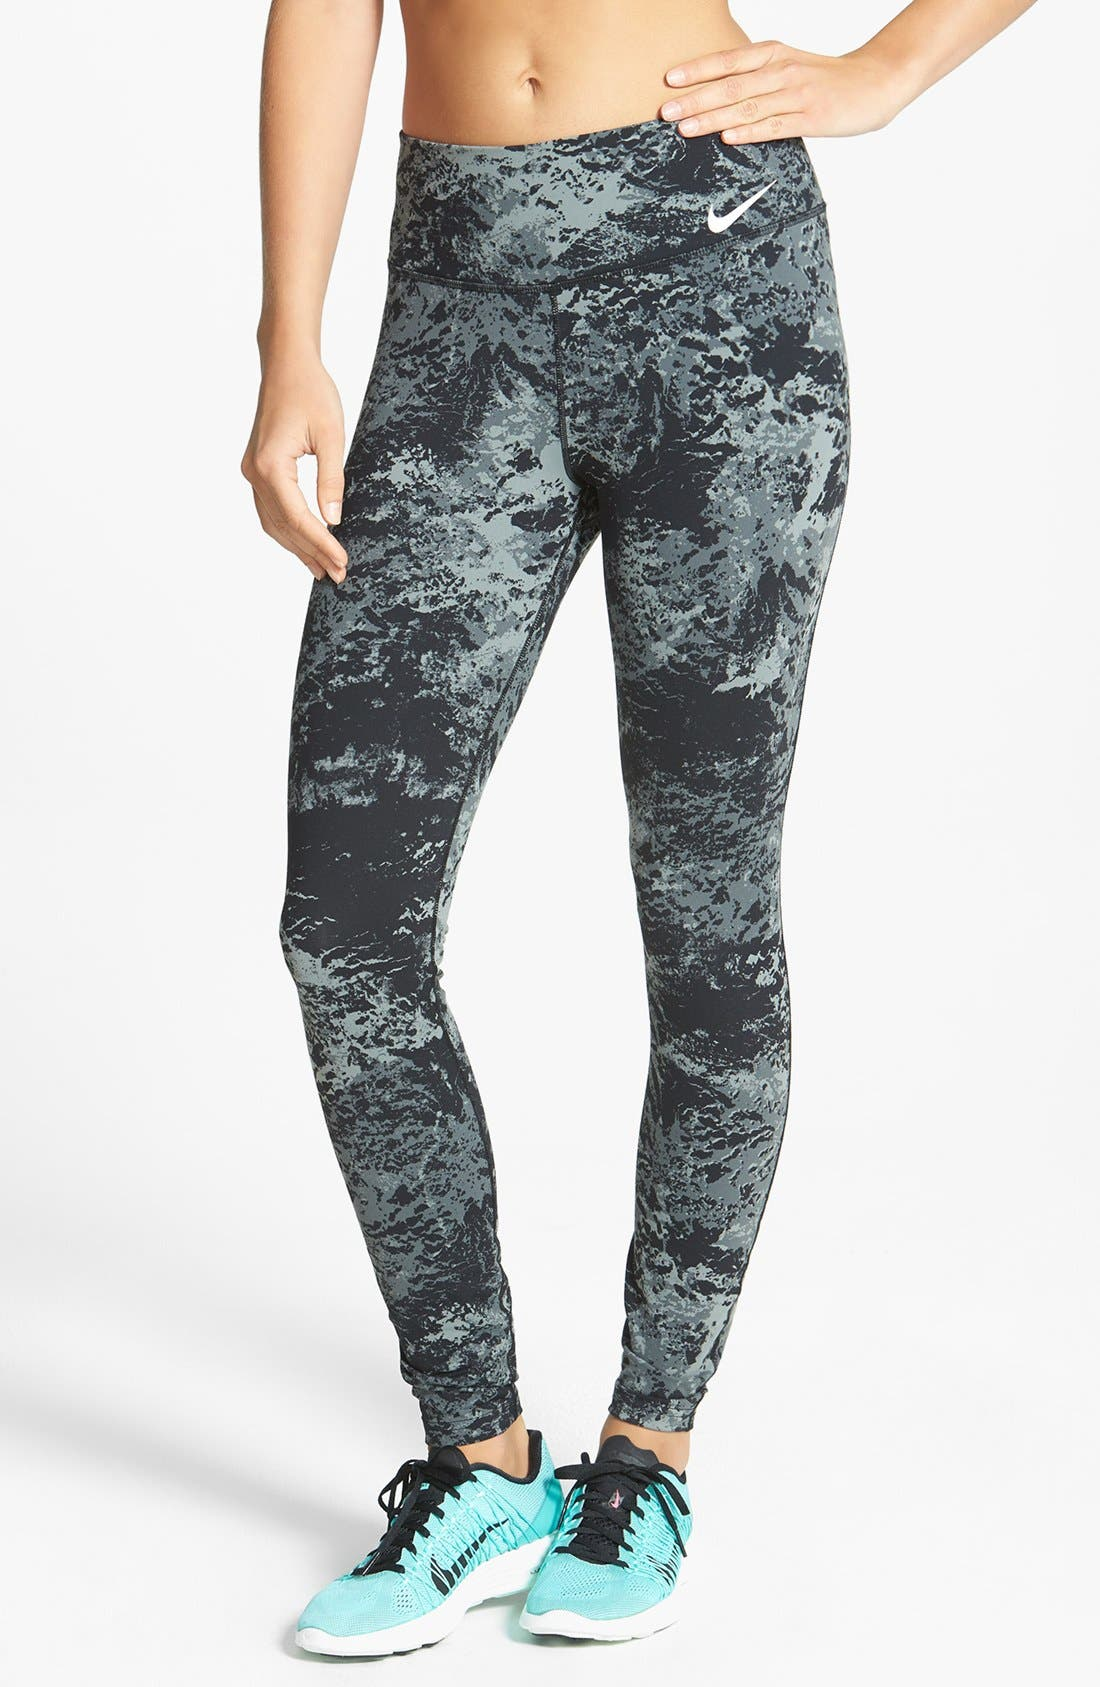 Alternate Image 1 Selected - Nike 'Legendary' Print Dri-FIT Tights (Online Only)